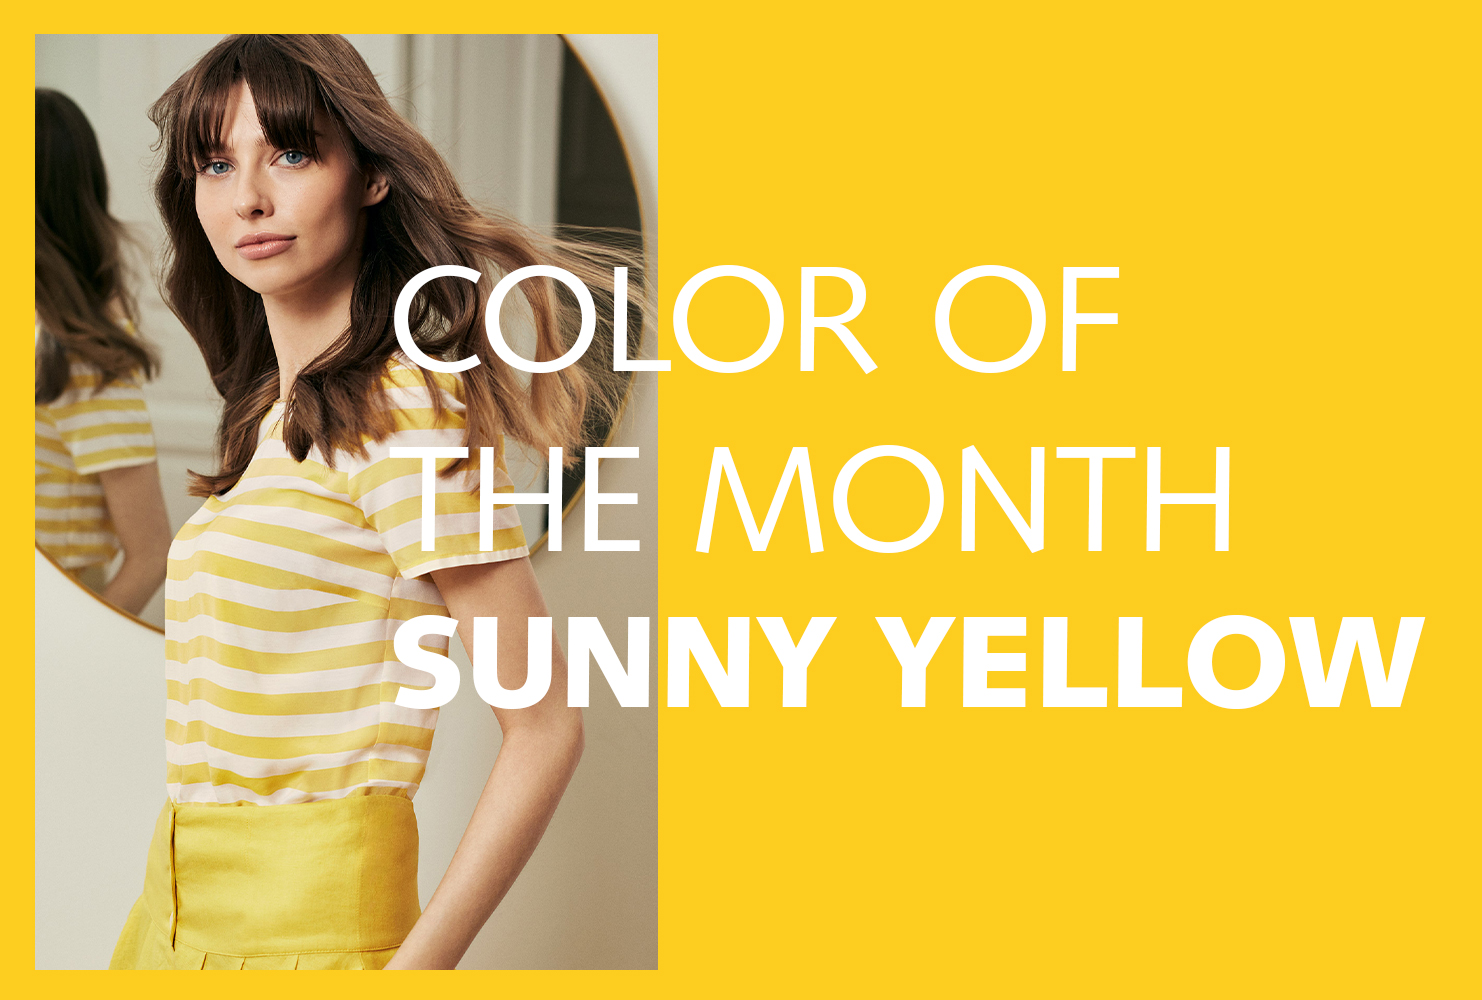 Color of the Month - Sunny Yellow